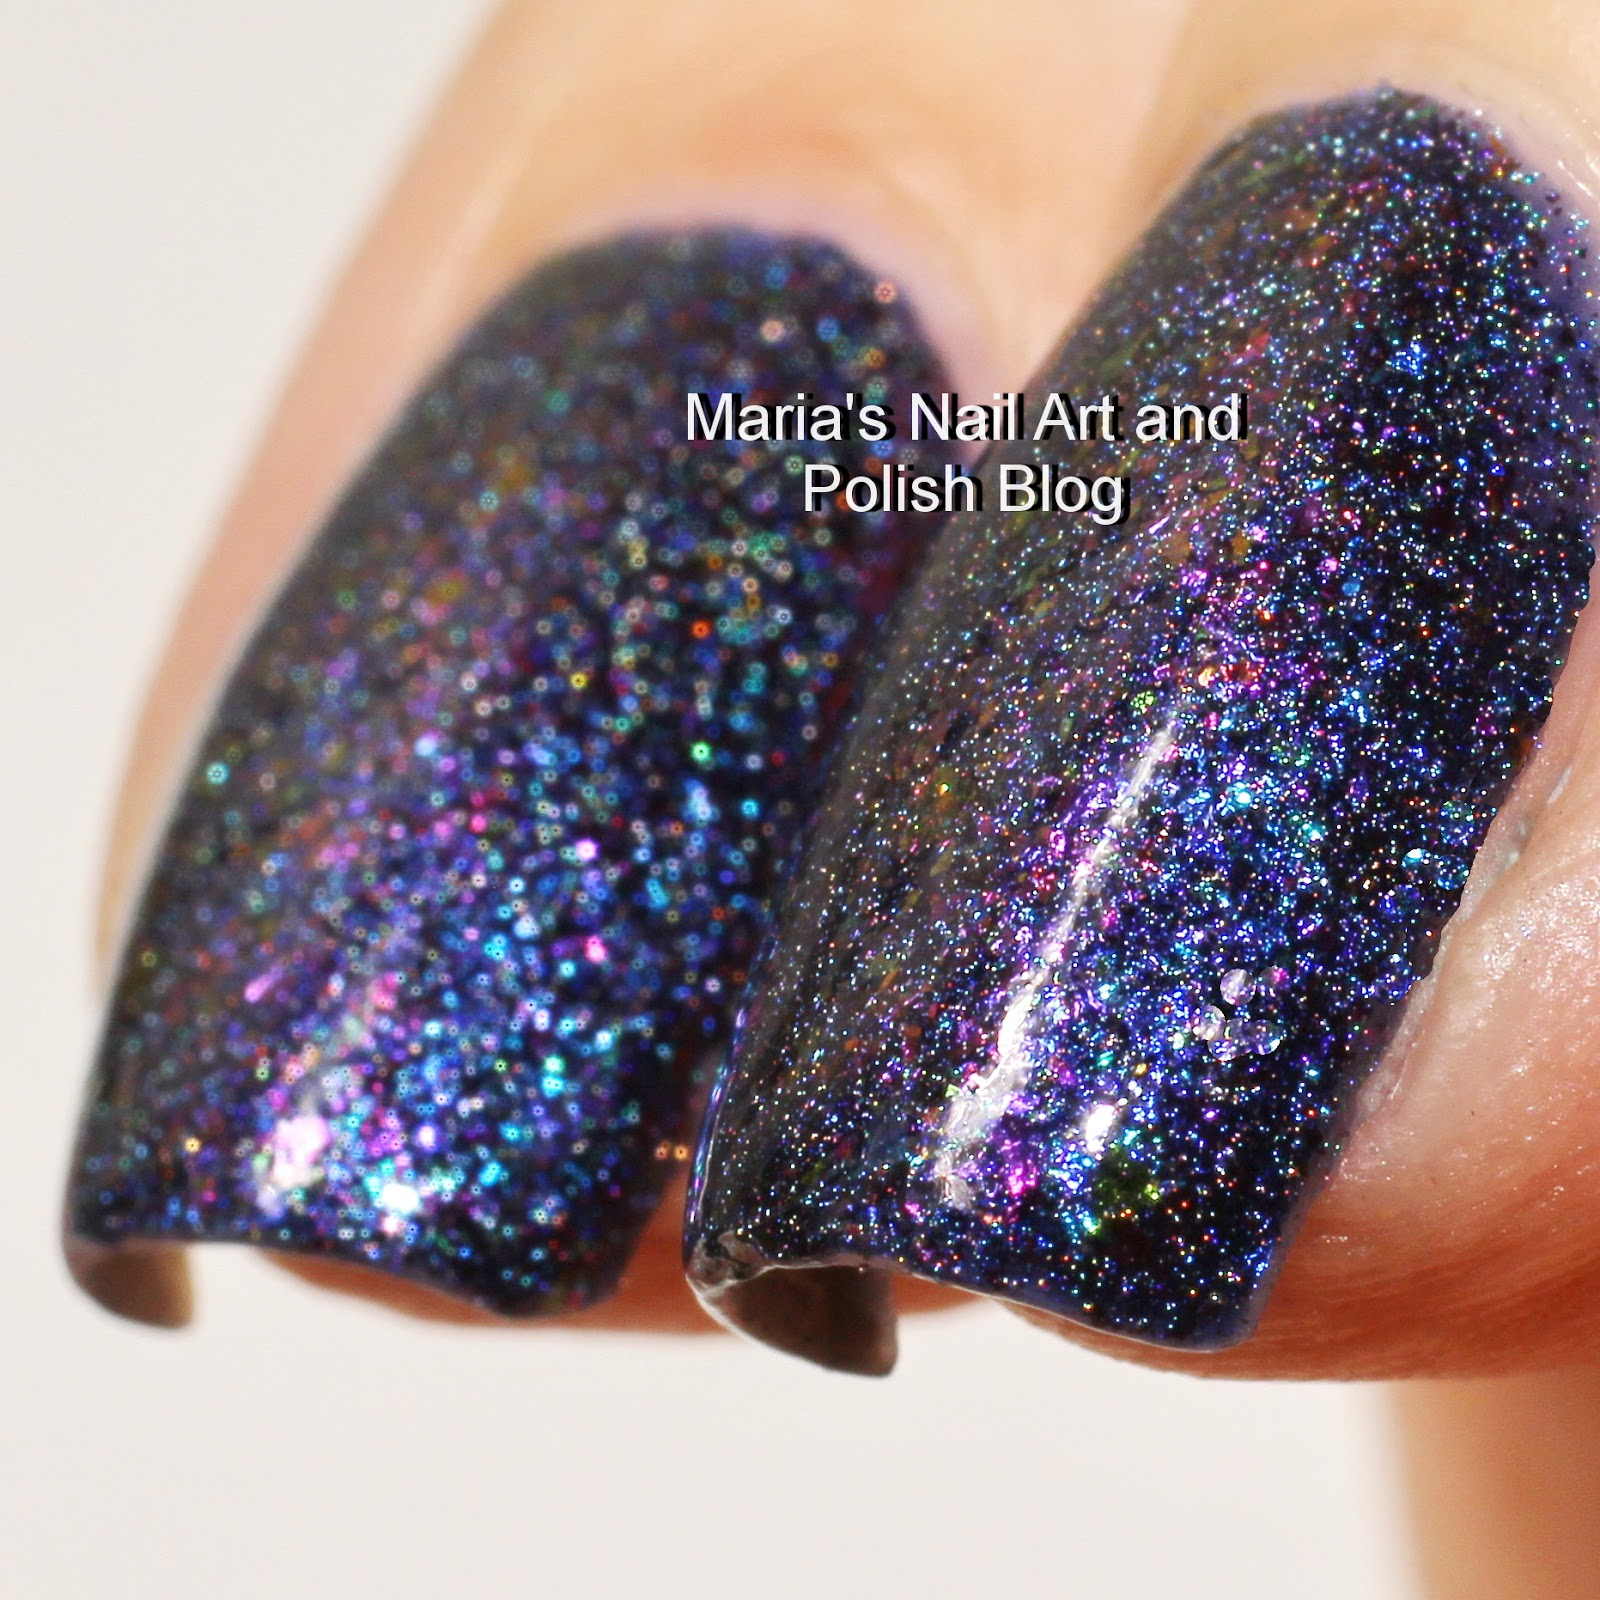 Piggieluv Freehand Stairway To Heaven Nail Art: Marias Nail Art And Polish Blog: Powder Perfect Vault Of